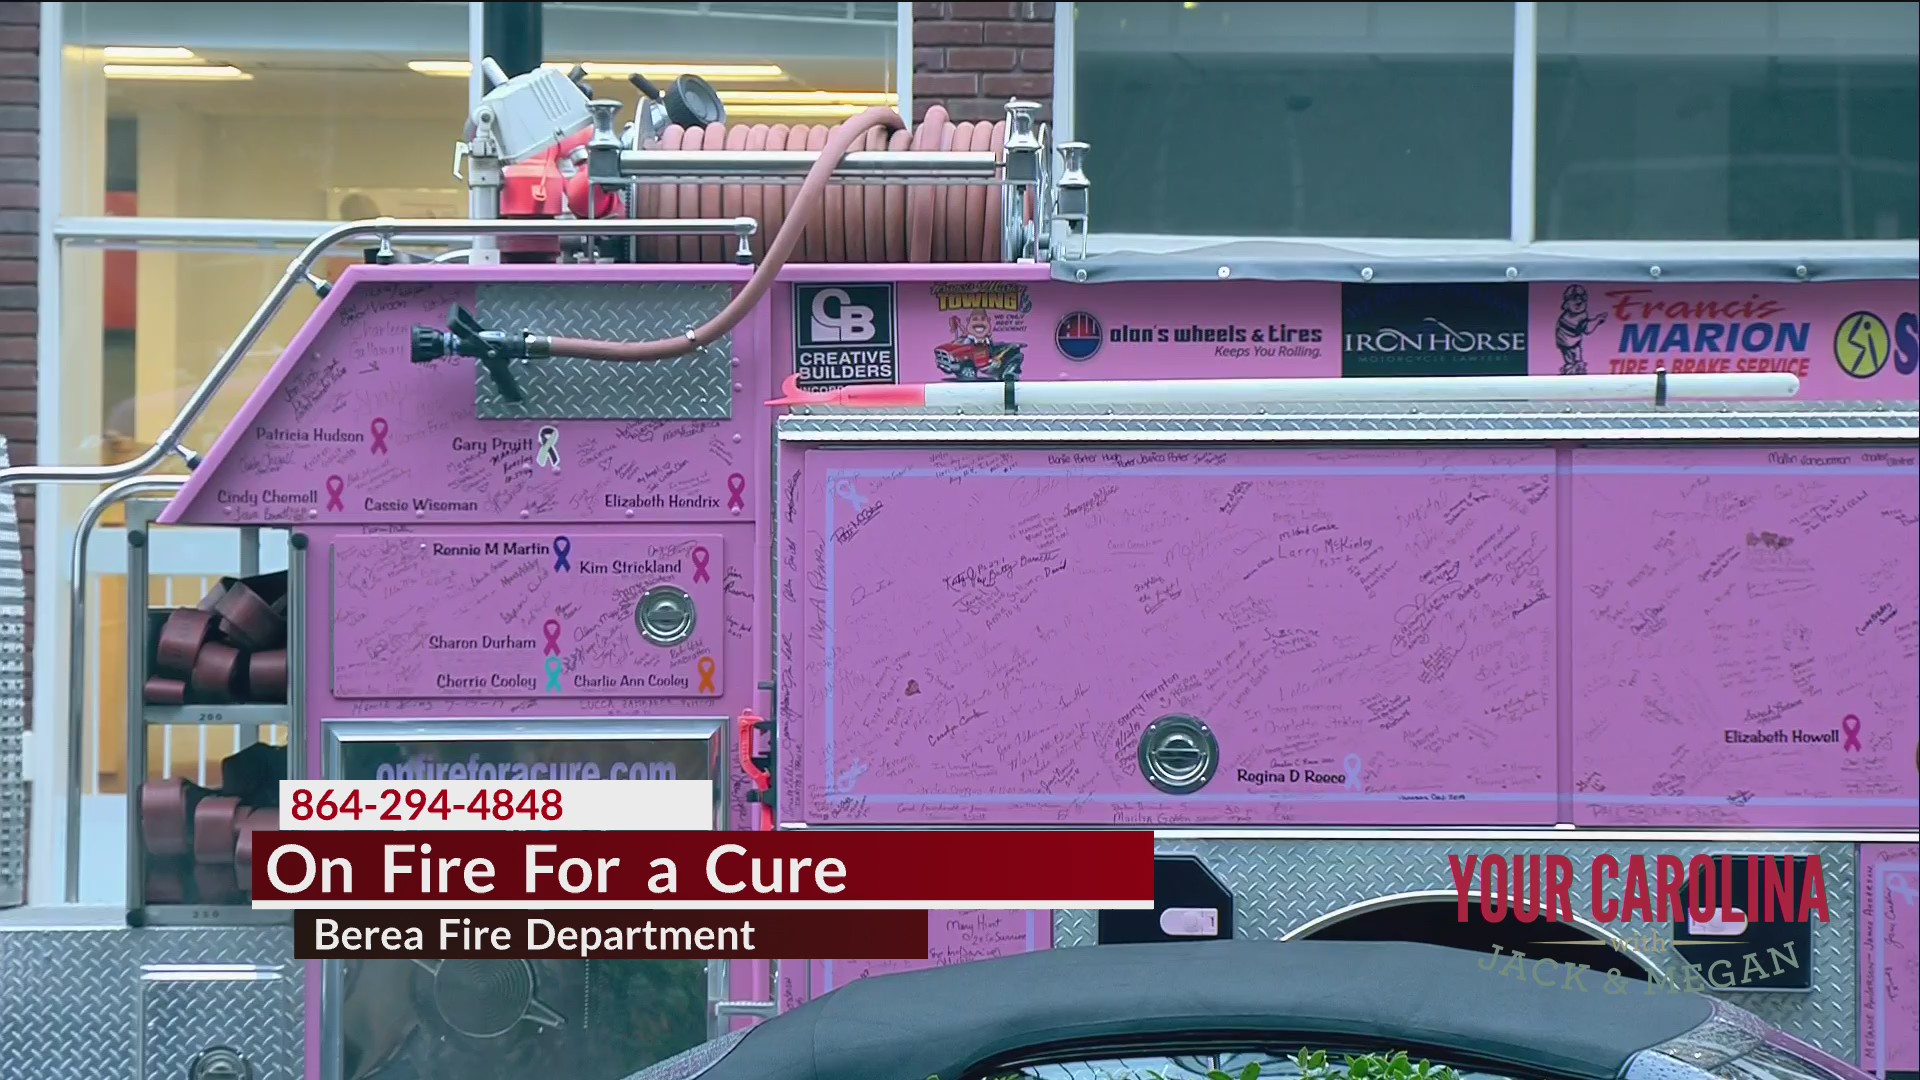 On Fire For a Cure